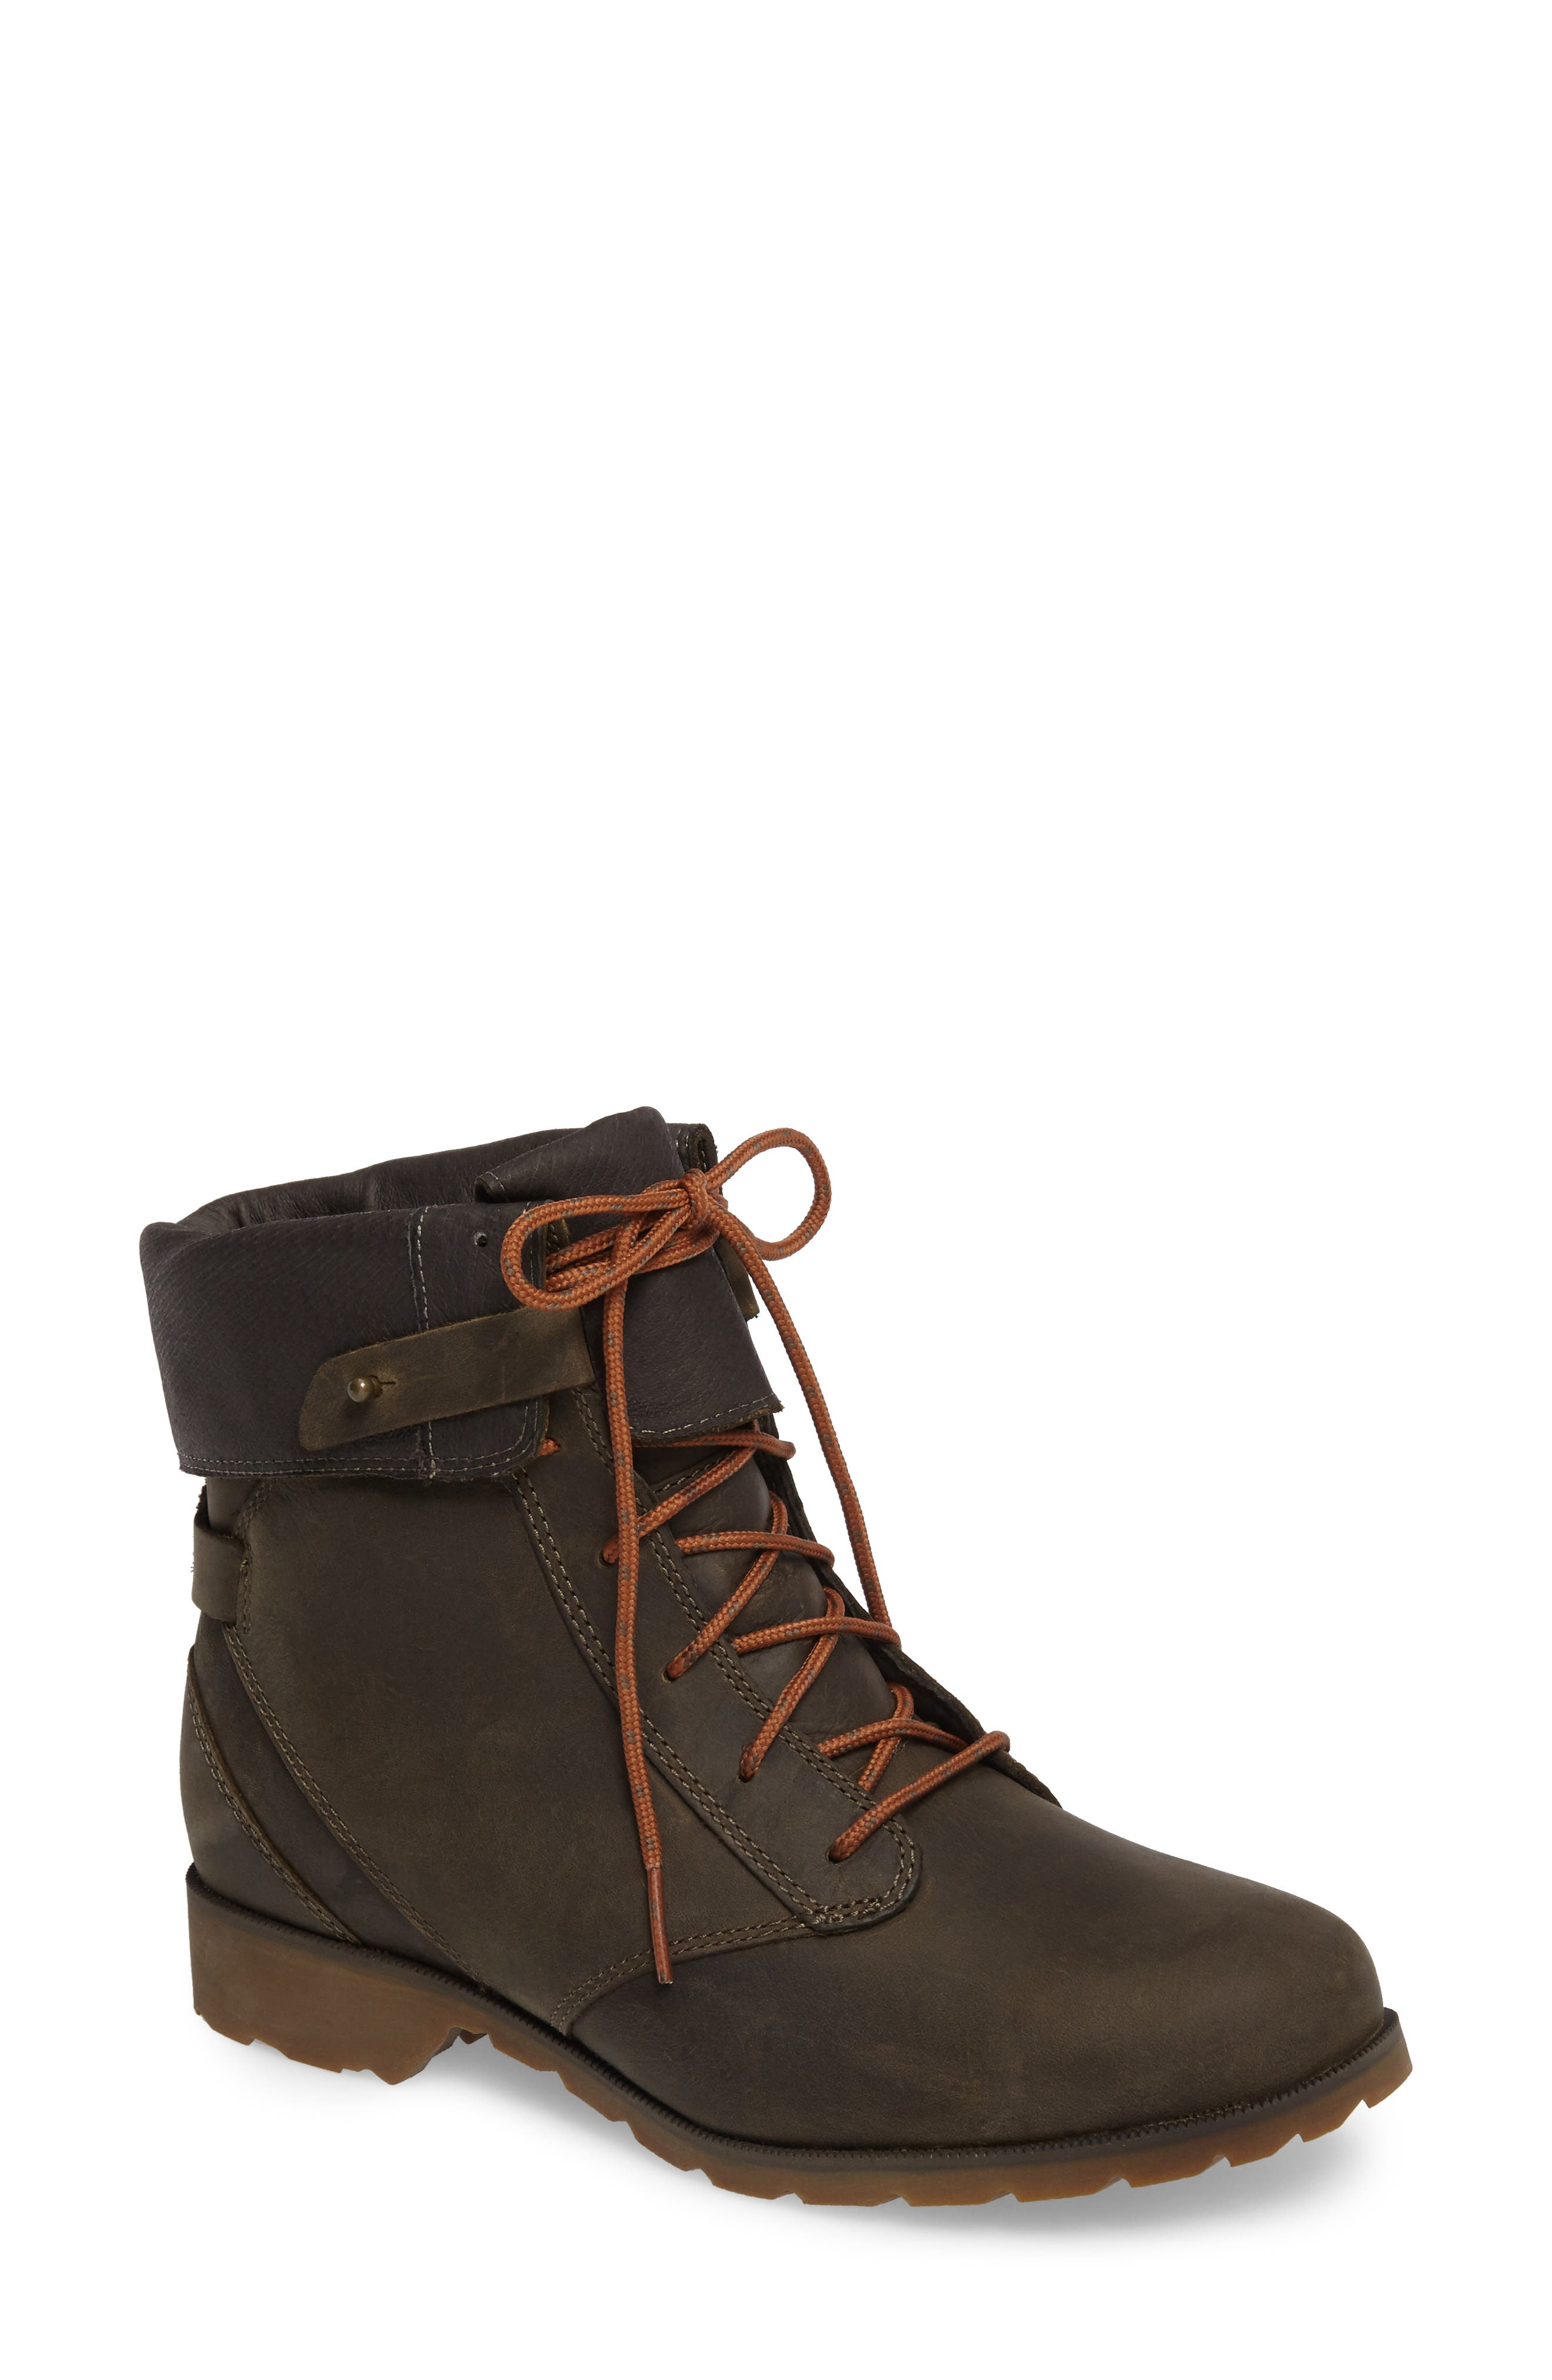 Teva 'De La Vina' Waterproof Lace-Up Boot (Women)